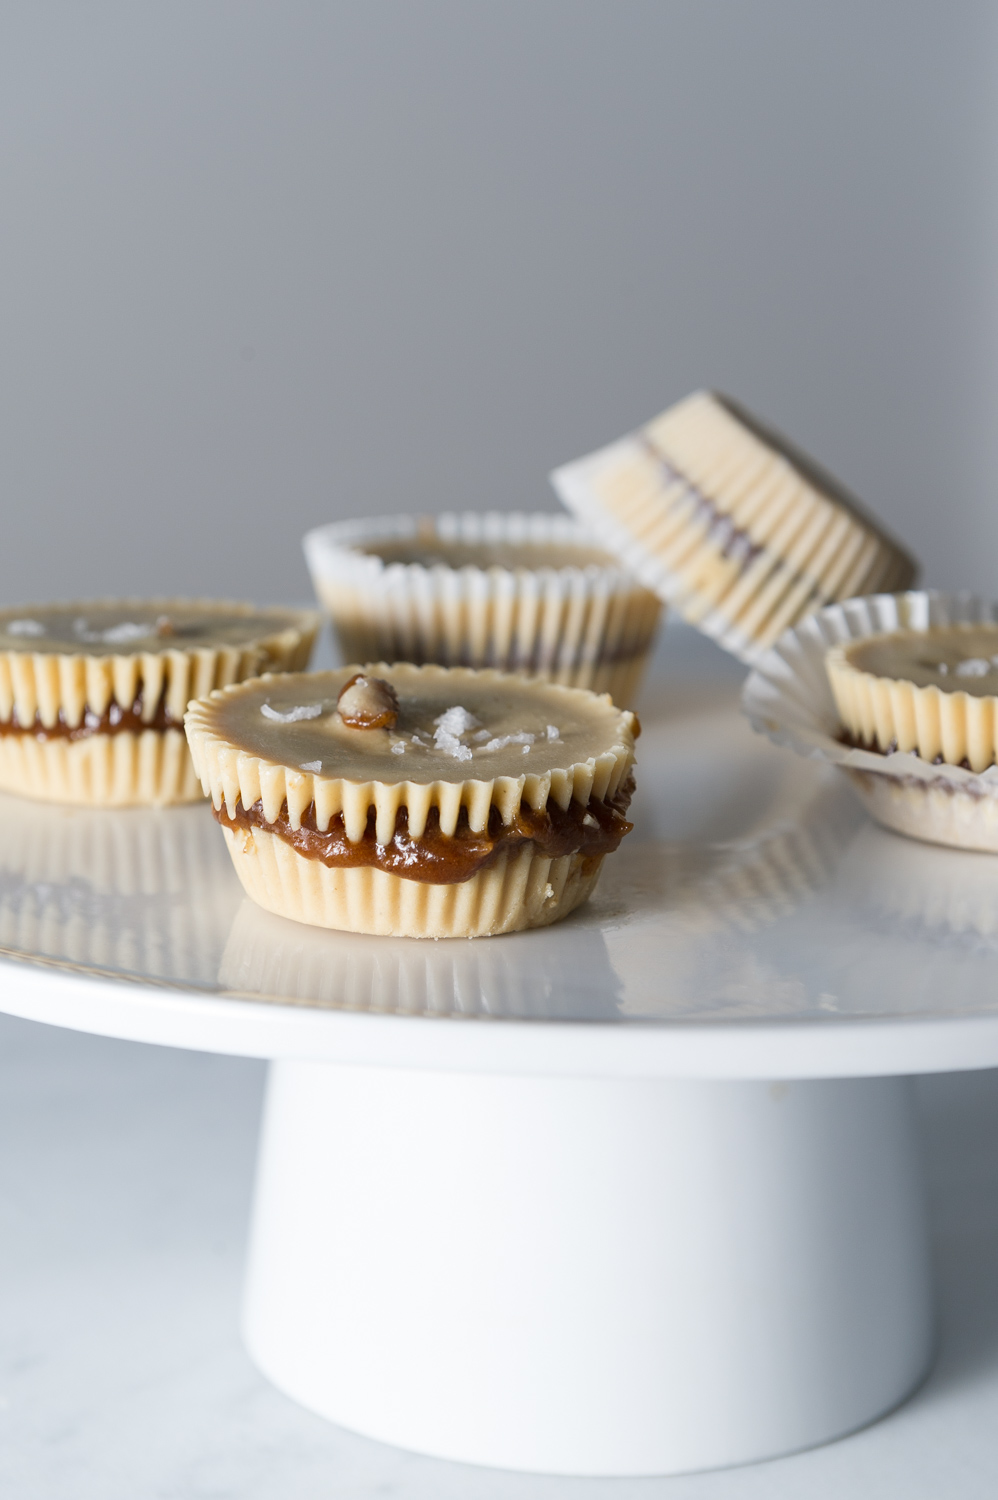 Salted Tahini Cups with a Ginger and Cardamom Coffee Filling